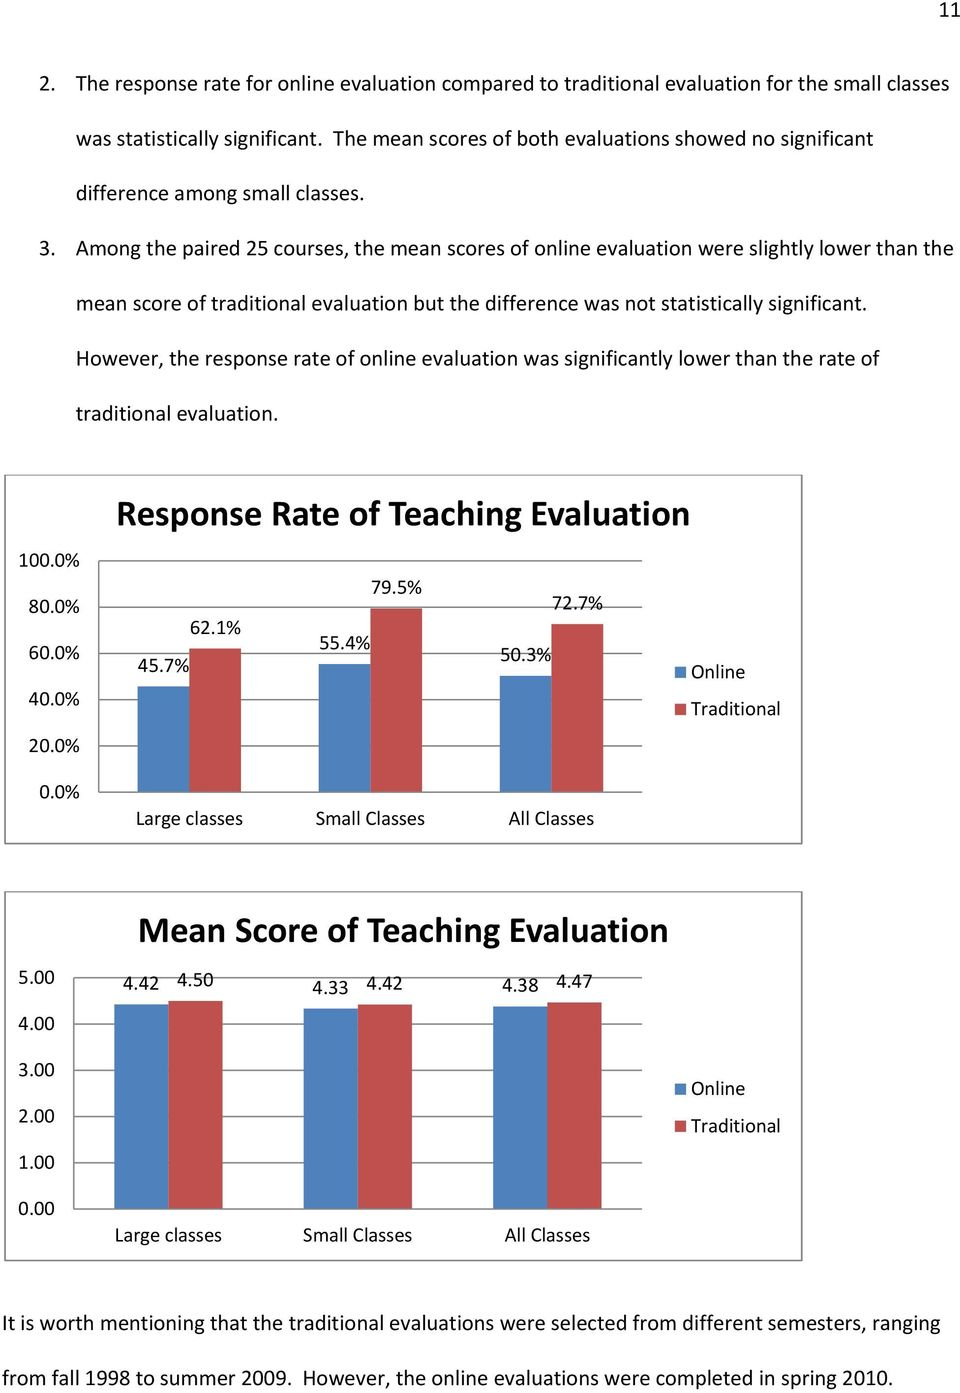 Among the paired 25 courses, the mean scores of online evaluation were slightly lower than the mean score of traditional evaluation but the difference was not statistically significant.